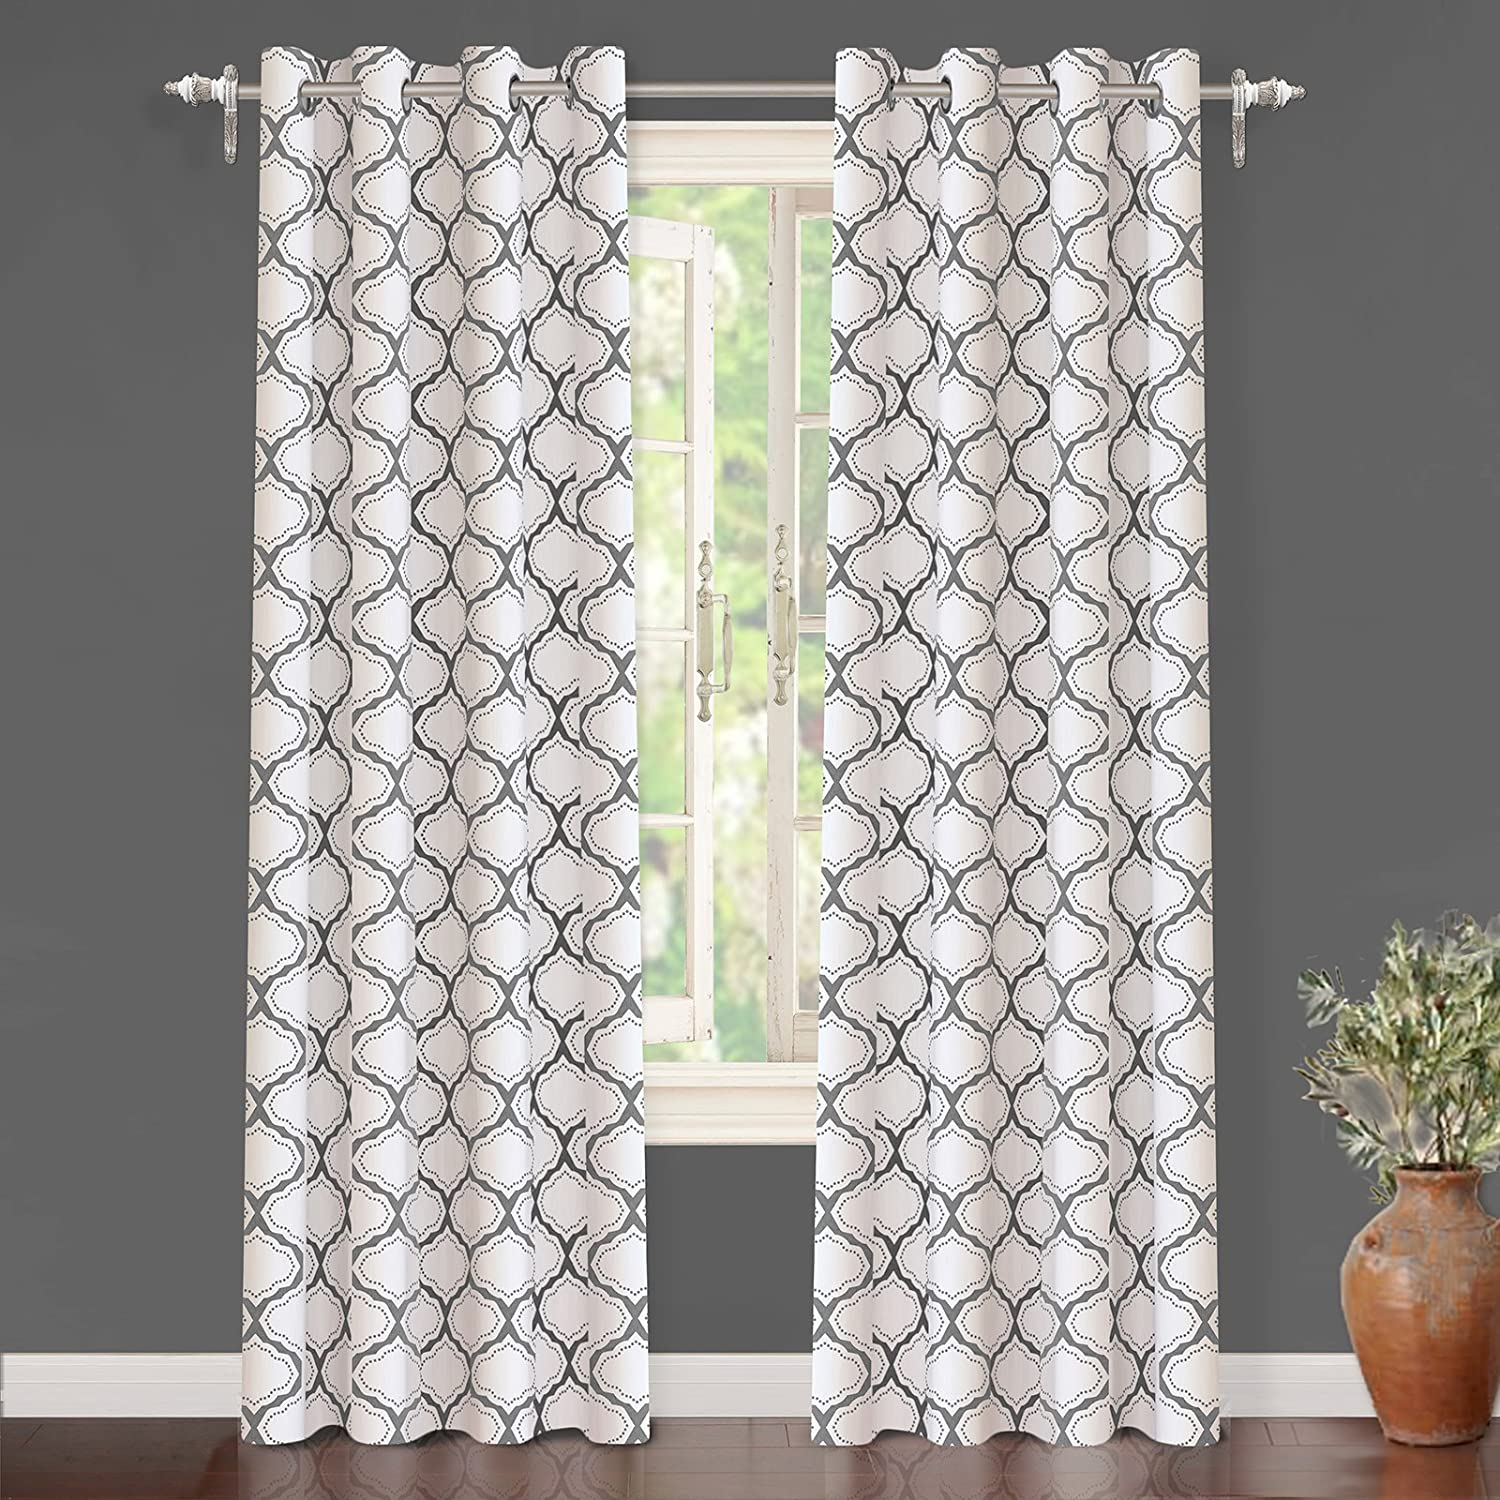 Amazon DriftAway Geometric Trellis Room Darkening Thermal Insulated Grommet Unlined Window Curtains Set Of Two Panels Each 52x84 Gray Home